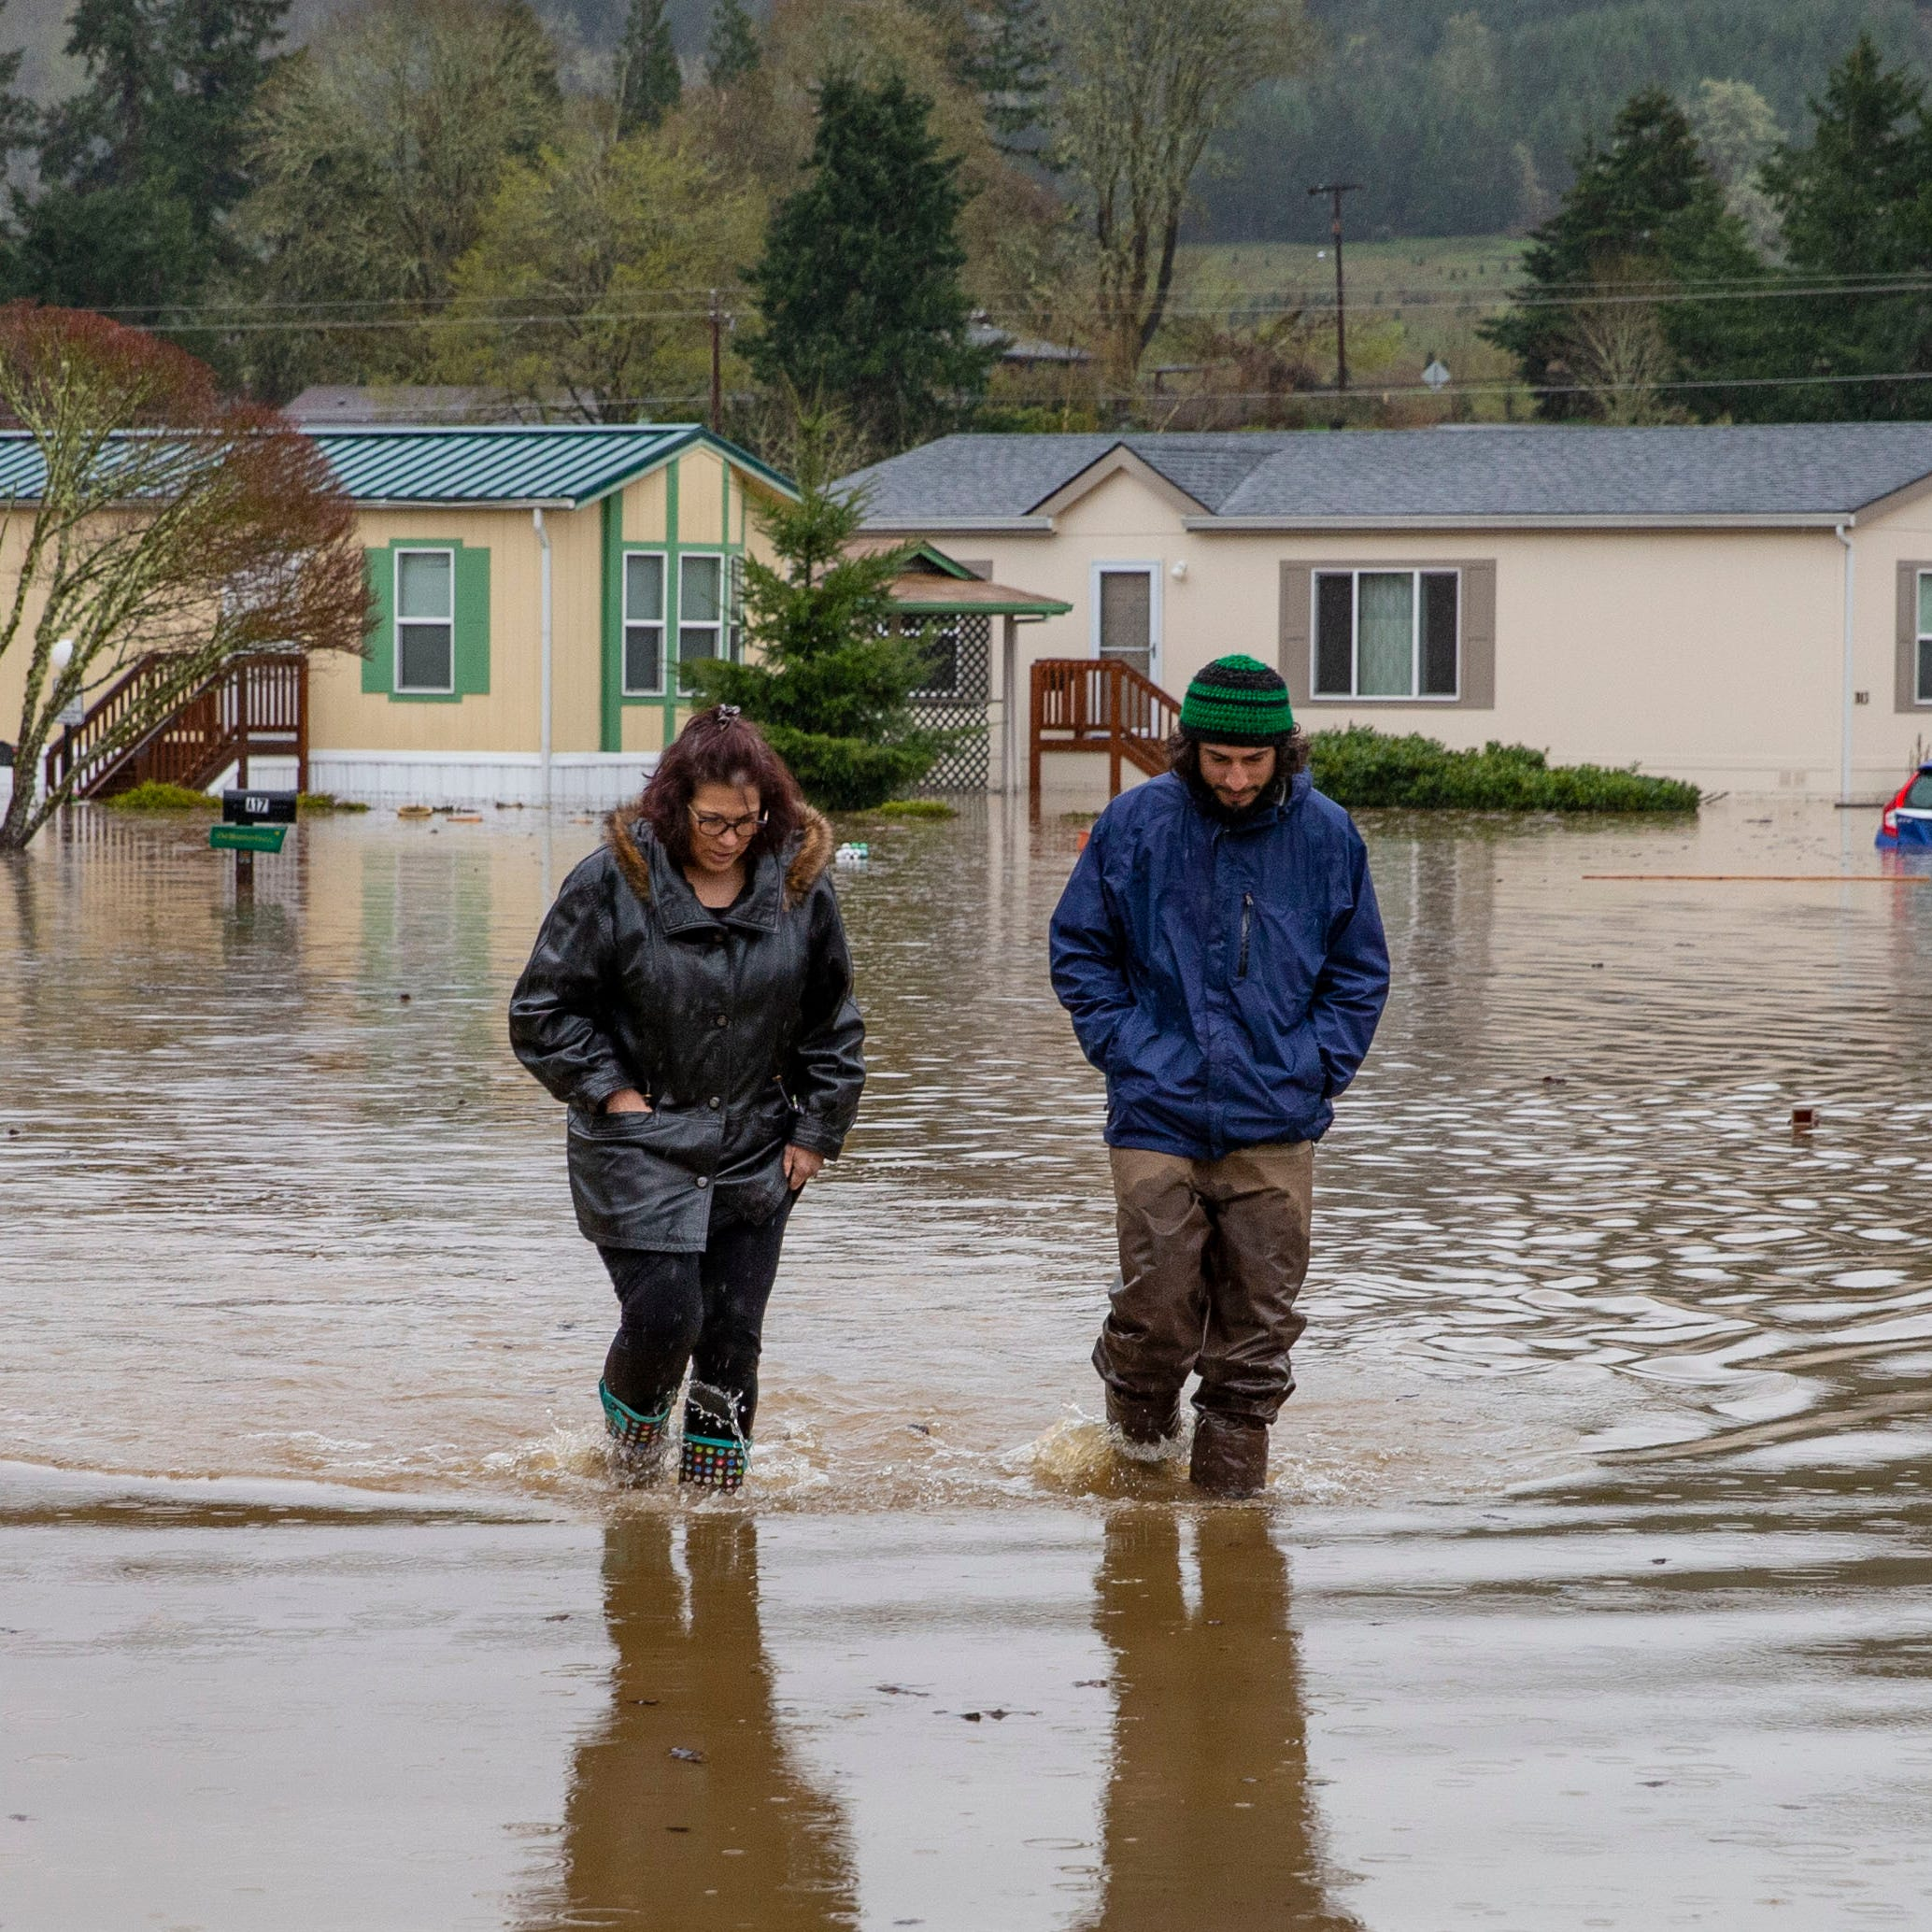 Evacuations continue near Eugene after Willamette, Row river flooding